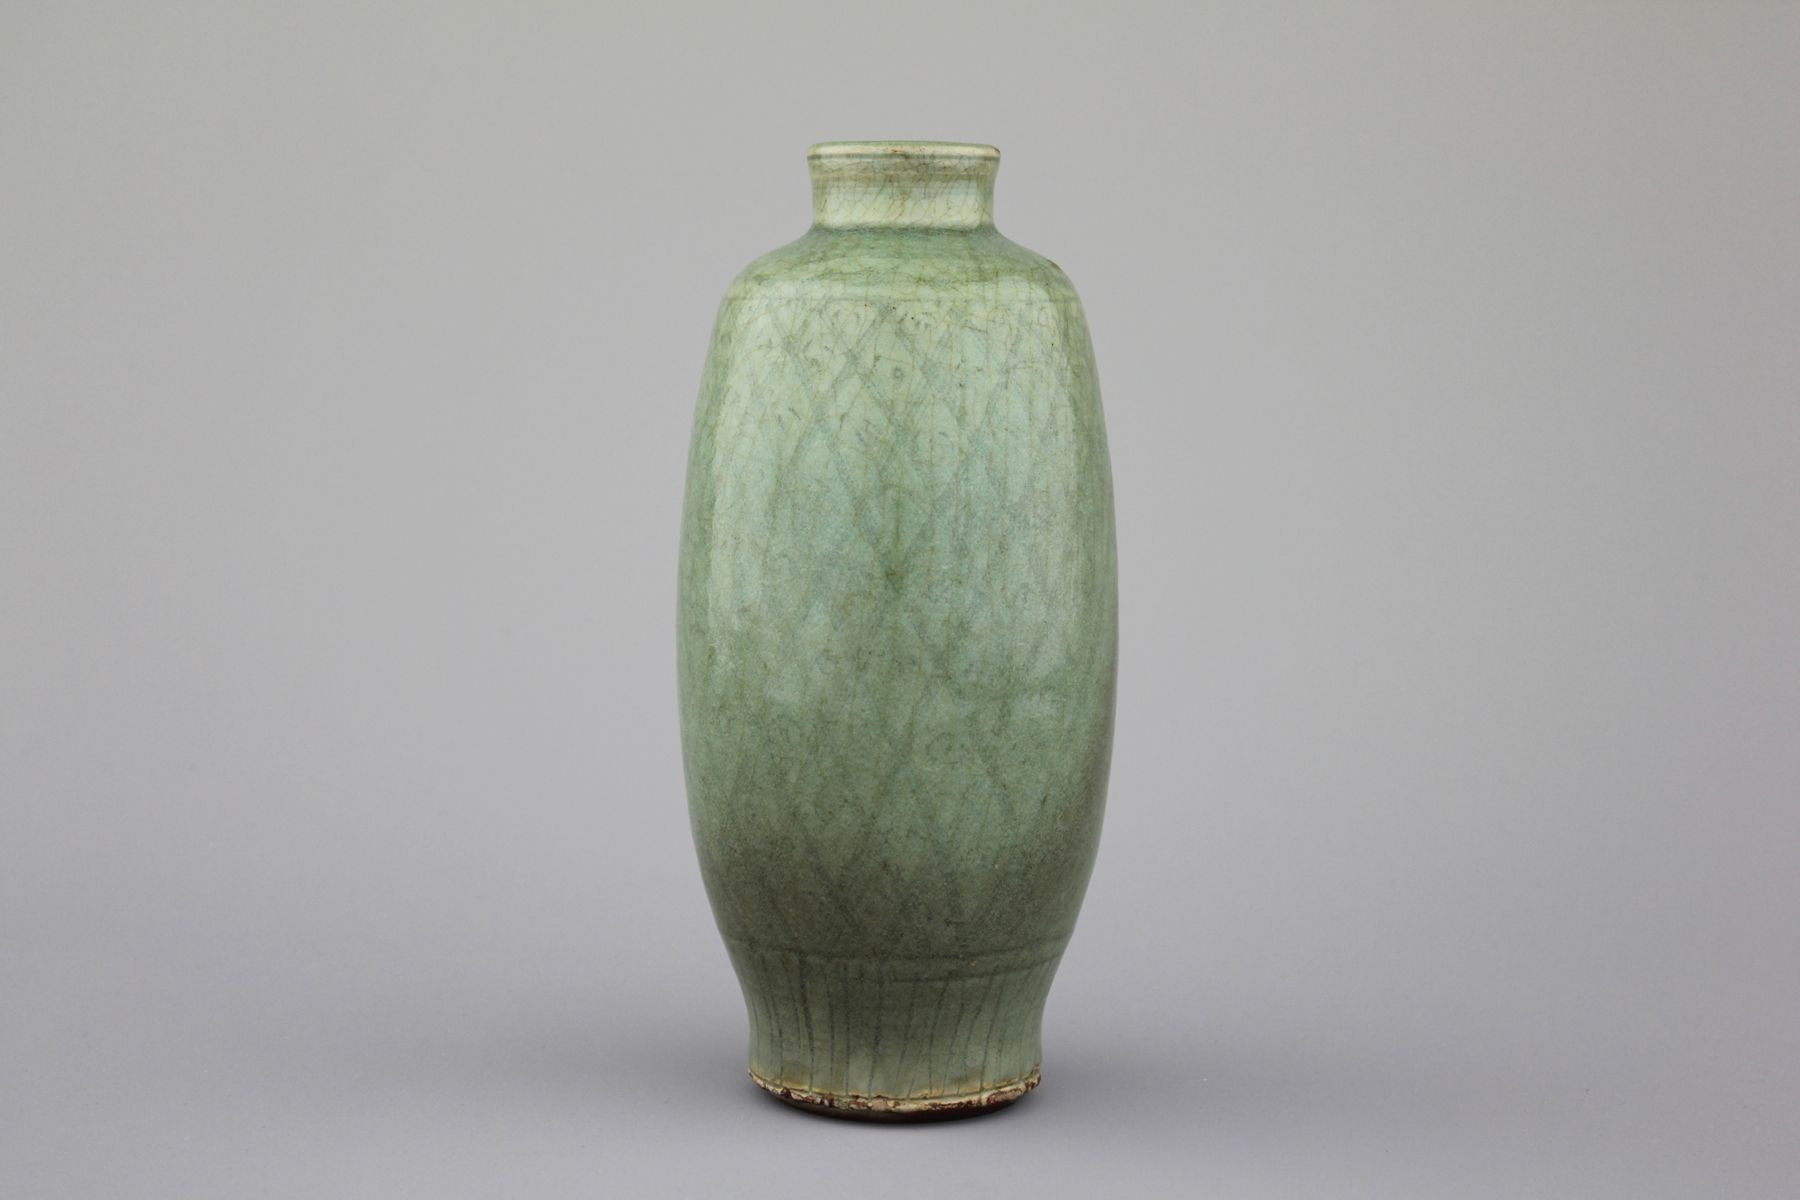 ming vase markings of a green glazed ming dynasty longquan vase monochrome chinese within a green glazed ming dynasty longquan vase